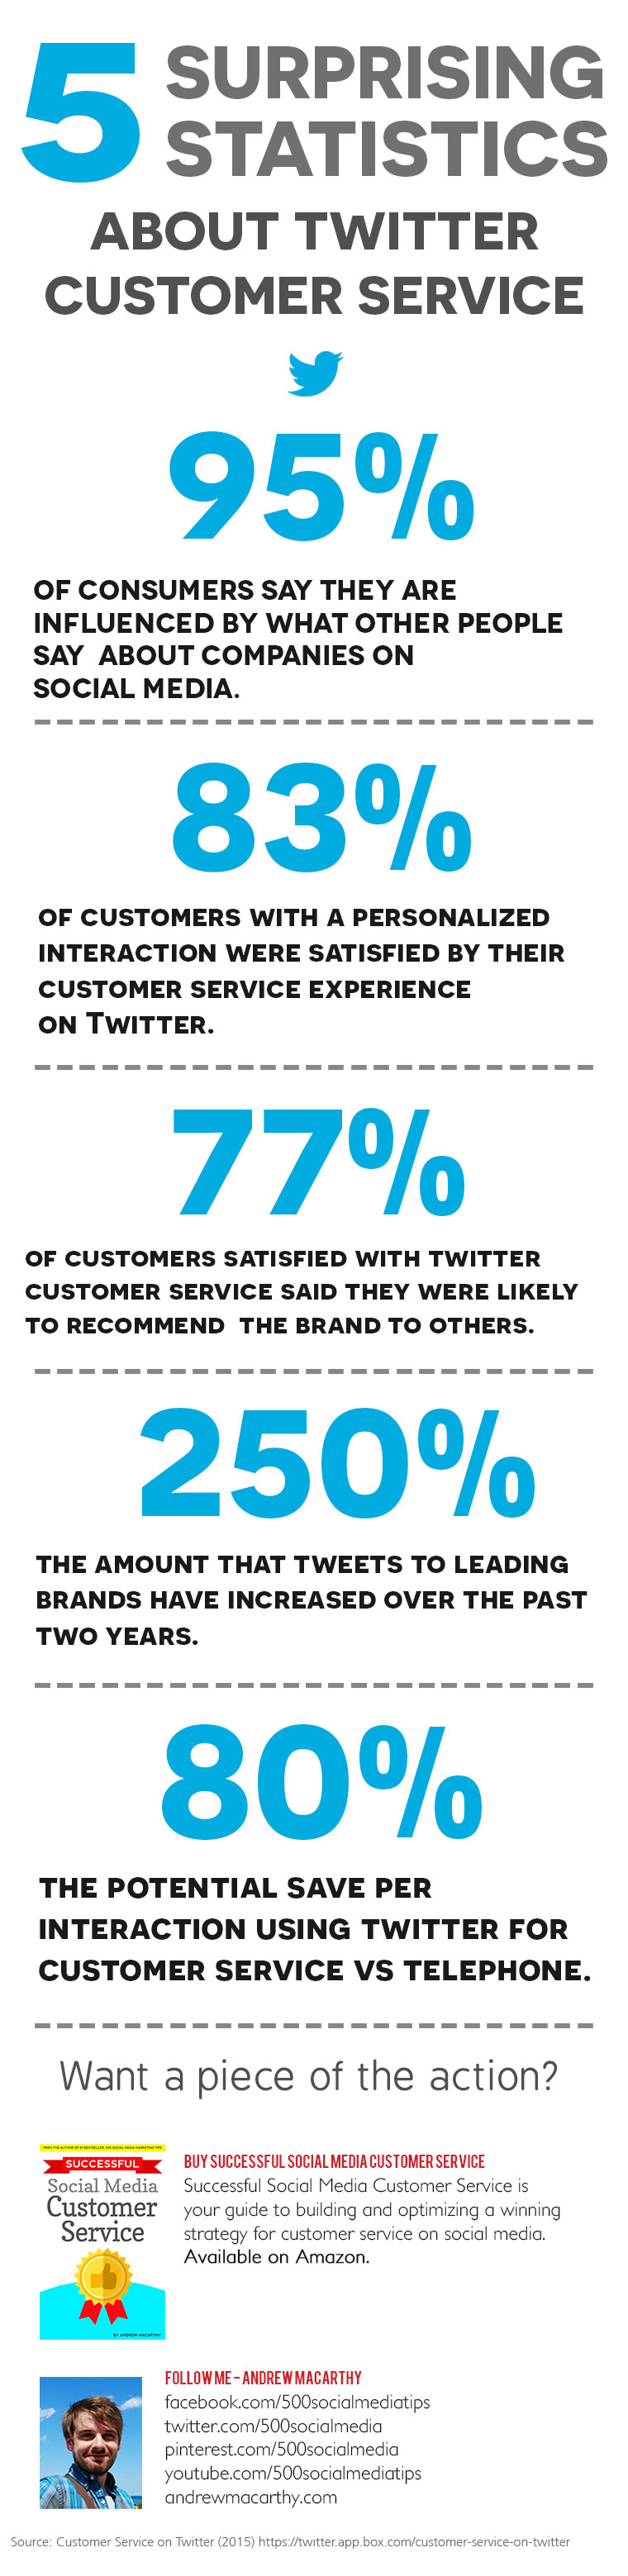 5 Surprising Statistics About Customer Service Statistics on Twitter